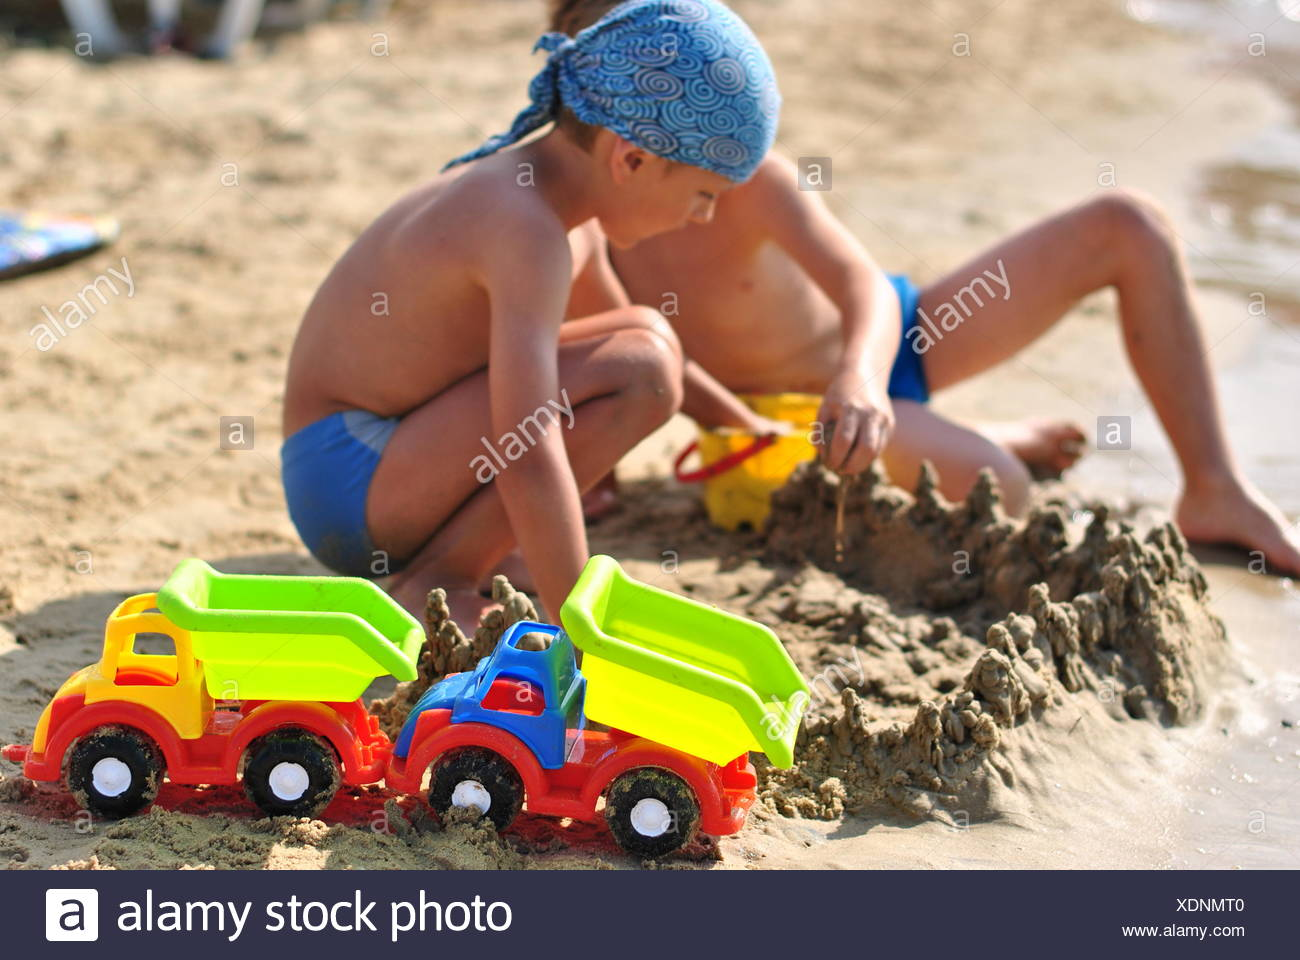 Children (4-5) playing on sandy beach - Stock Image